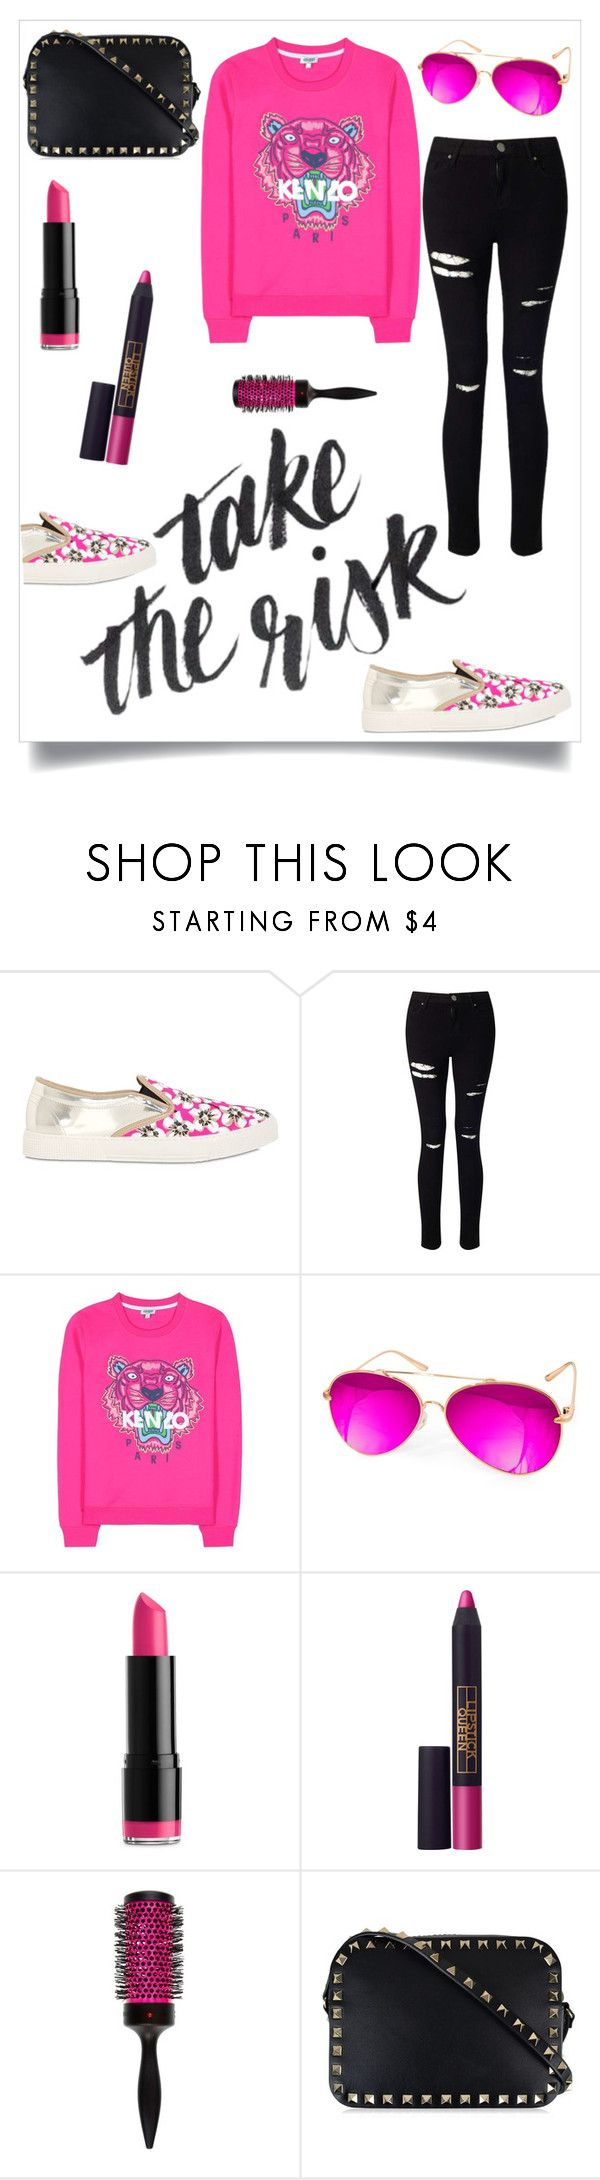 """""""...but you'll turn me away like I'm begging for a dollar"""" by thefashionmess ❤ liked on Polyvore featuring Kurt Geiger, Miss Selfridge, Kenzo, AQS by Aquaswiss, NYX, Lipstick Queen, Denman and Valentino"""